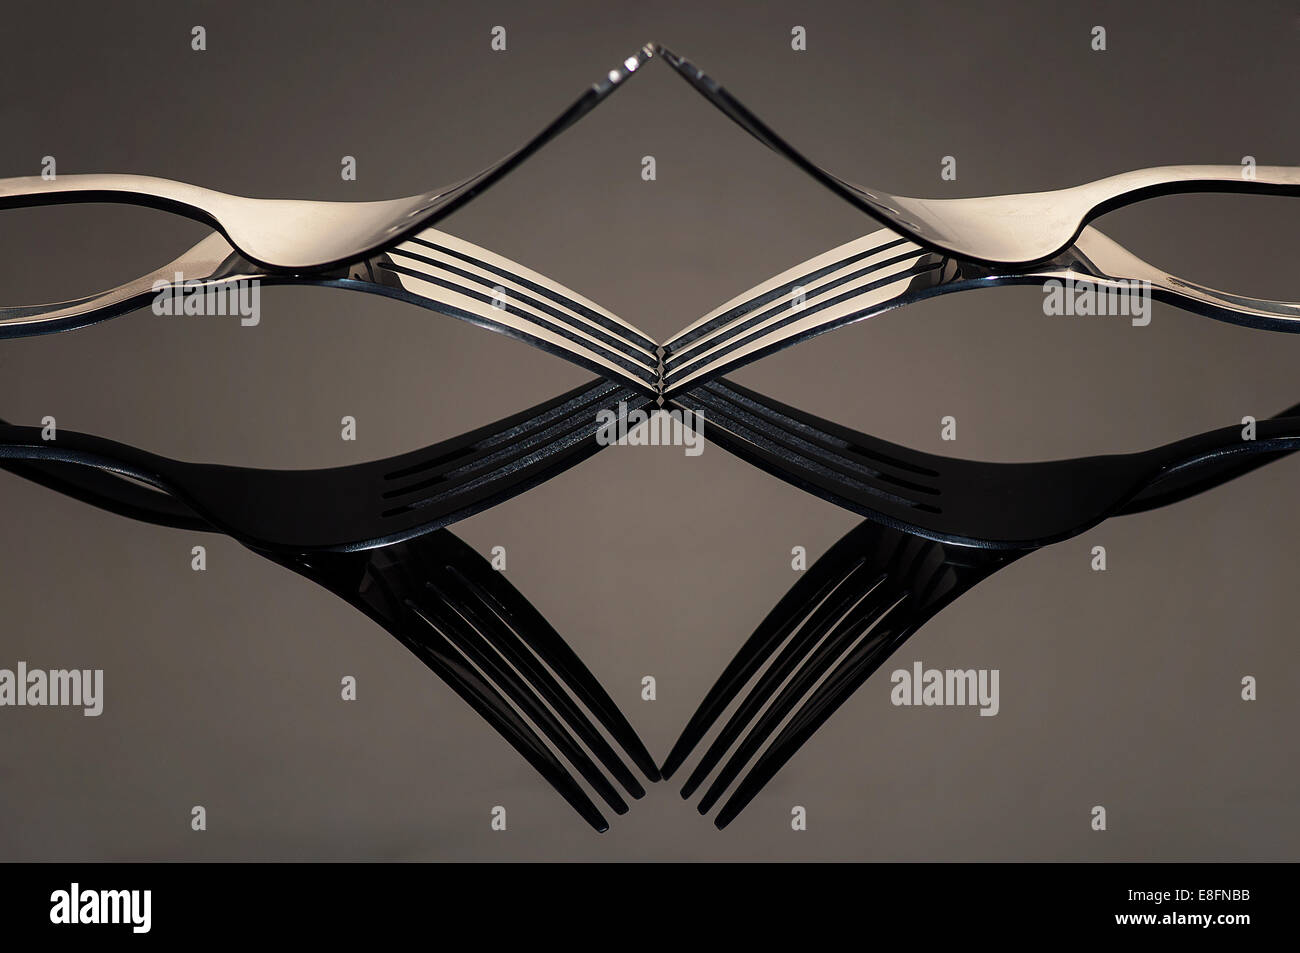 Indonesia, Jombang, Unique reflections of pair of forks - Stock Image